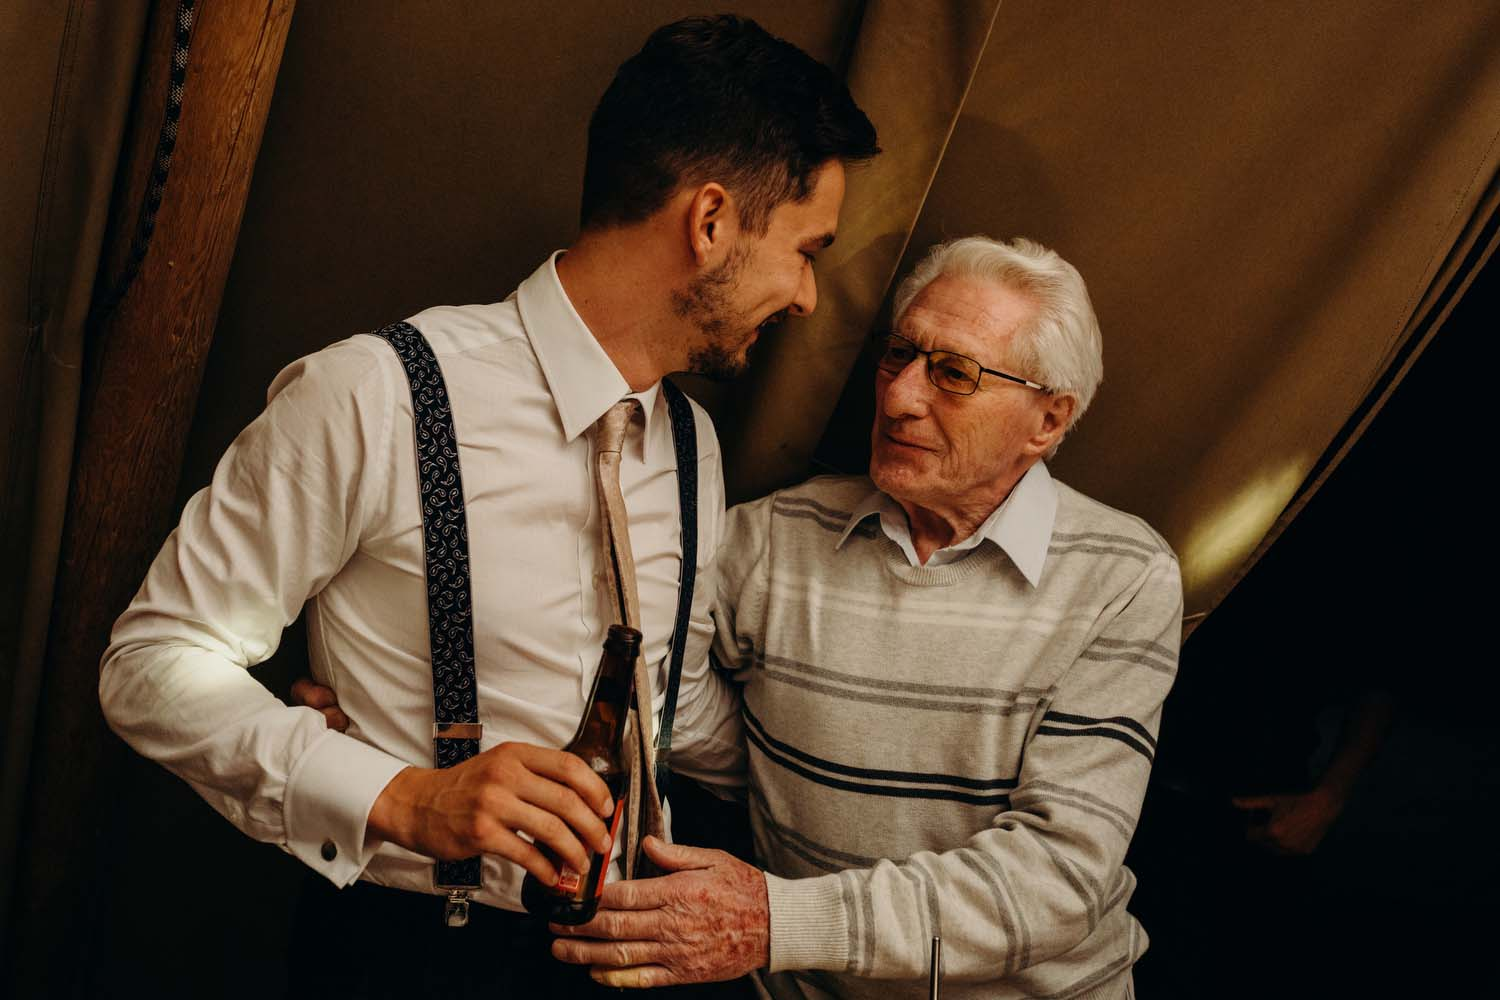 groom being hugged by grandfather